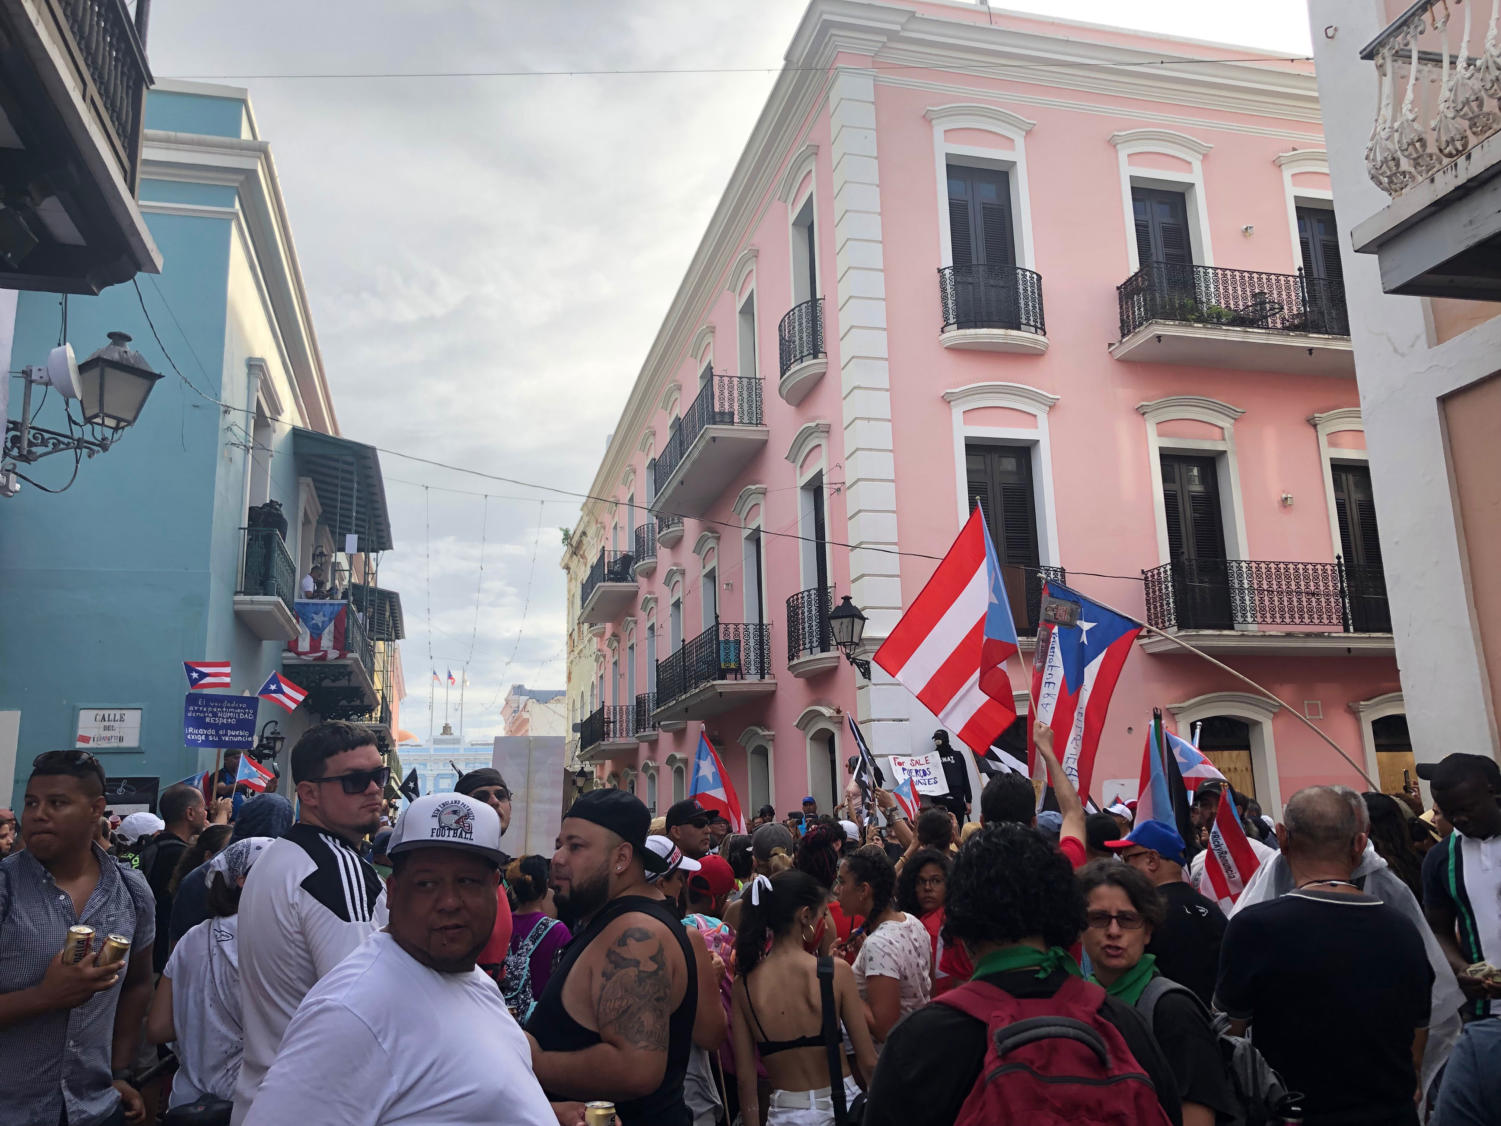 During Senior Anayansi Santiago's visit to Puerto Rico in July, residents of the island were mass protesting against then governor Ricky Rosello. Rosello ended up resigning, being replaced by two different governors, Pedro Pierluisi and then Wanda Vazquez.